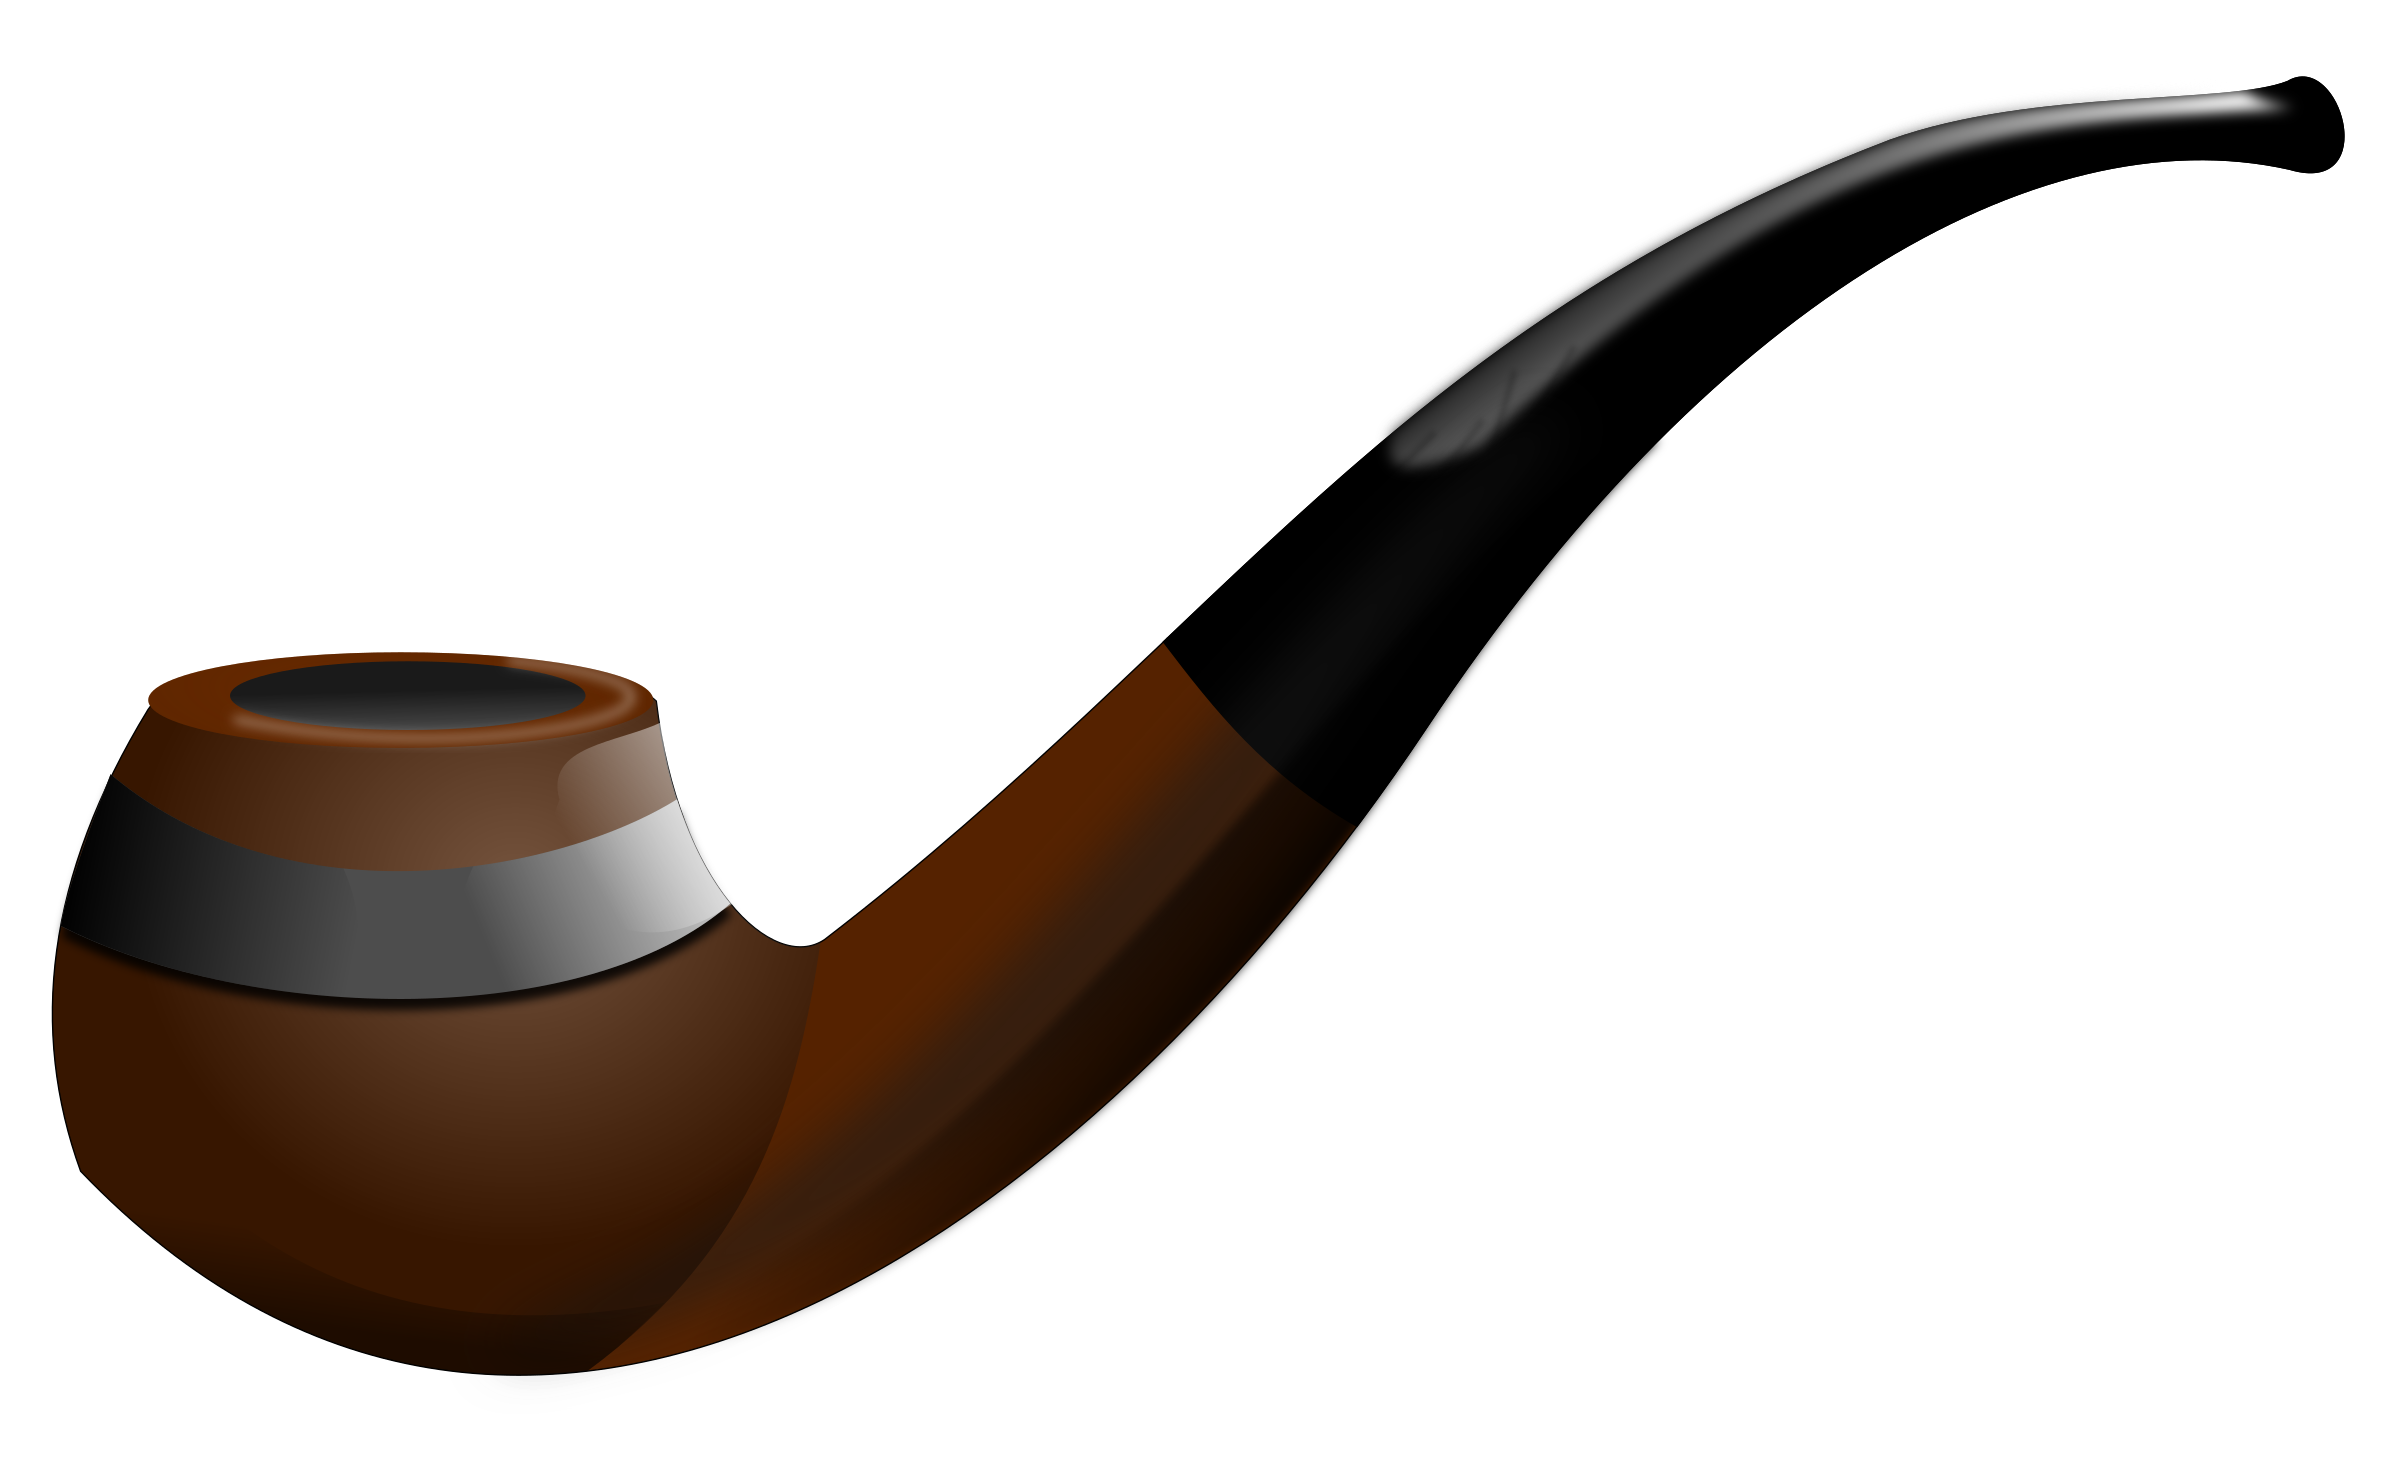 Smoking pencil and in. Cigar clipart sherlock holmes pipe